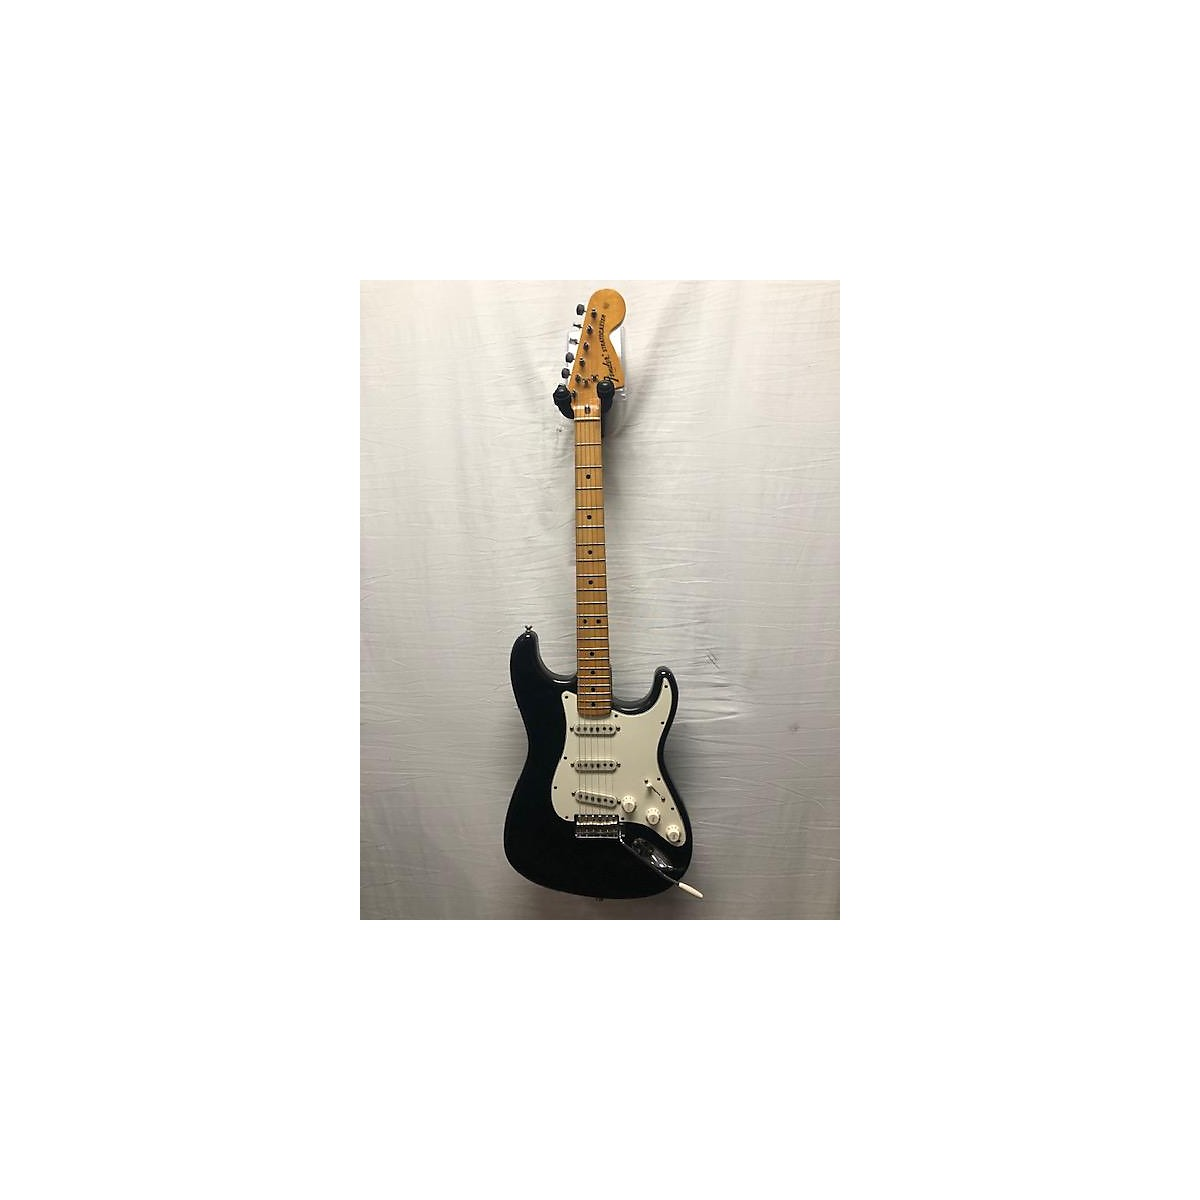 Fender 1974 1974 Stratocaster Solid Body Electric Guitar